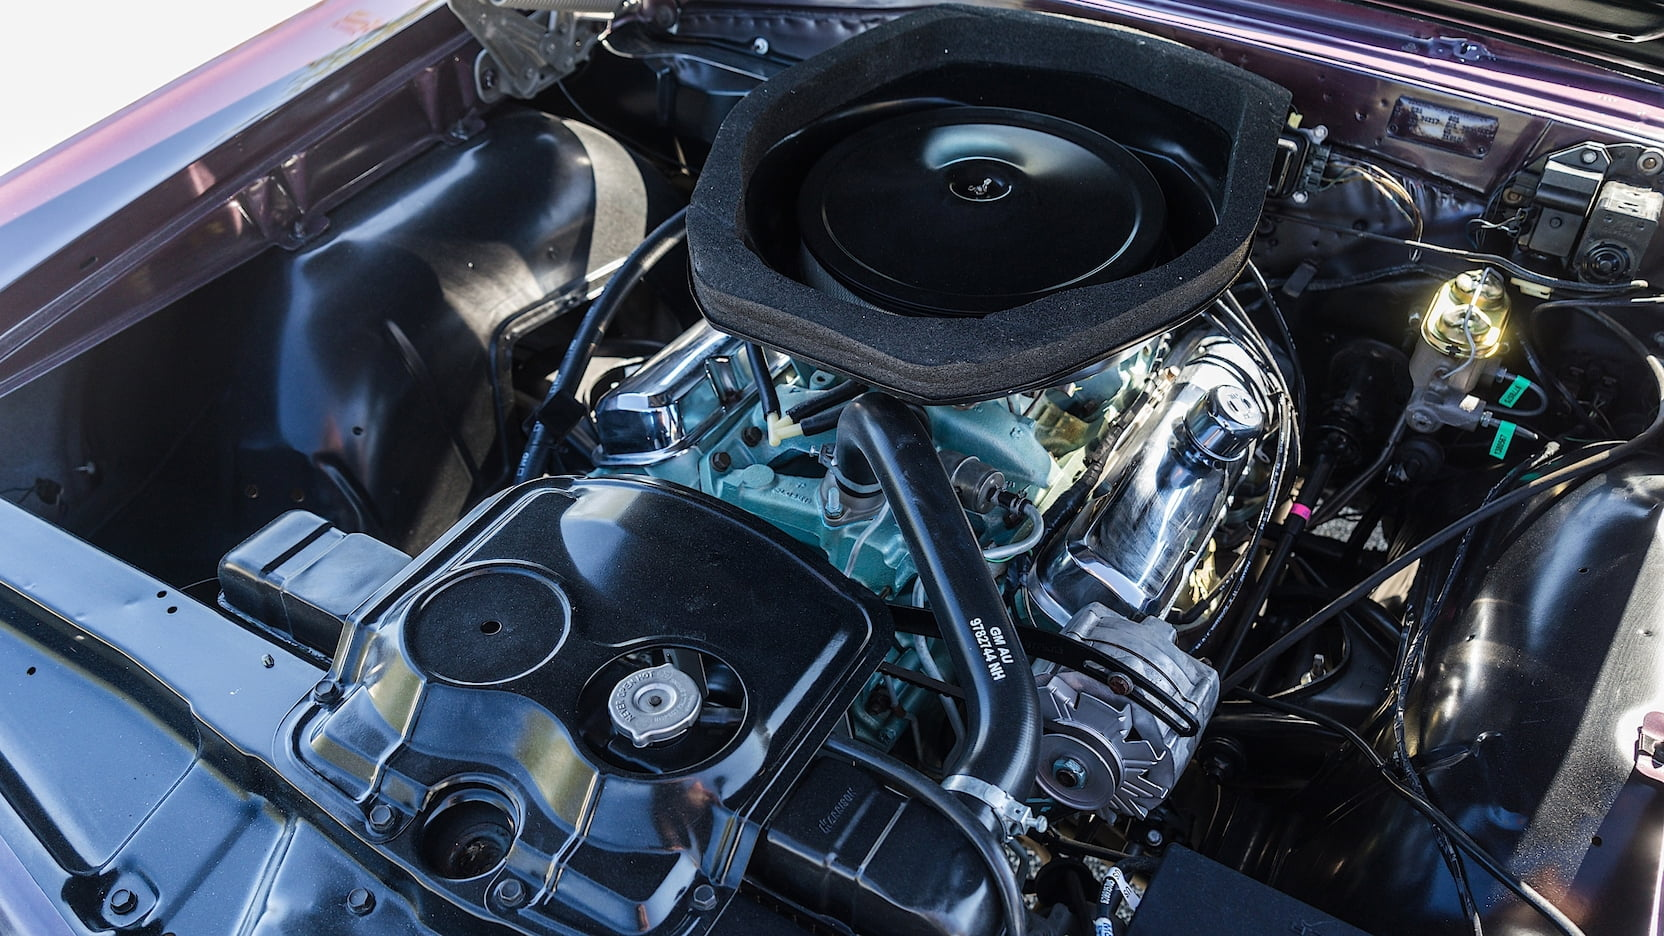 1967 Pontiac GTO engine